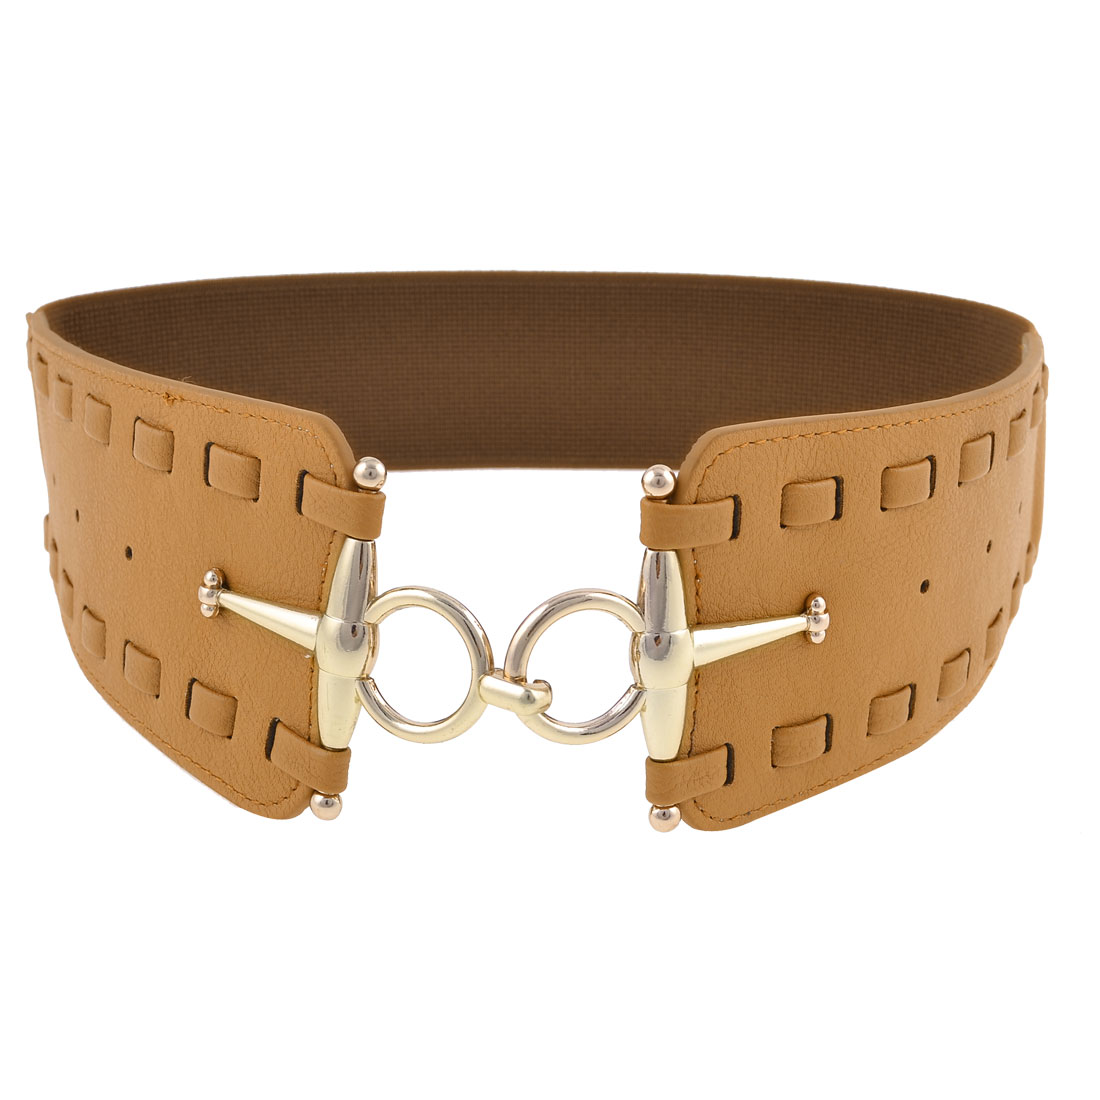 Brown Faux Leather Interlocking Buckle Elastic Waist Cinch Belt for Woman